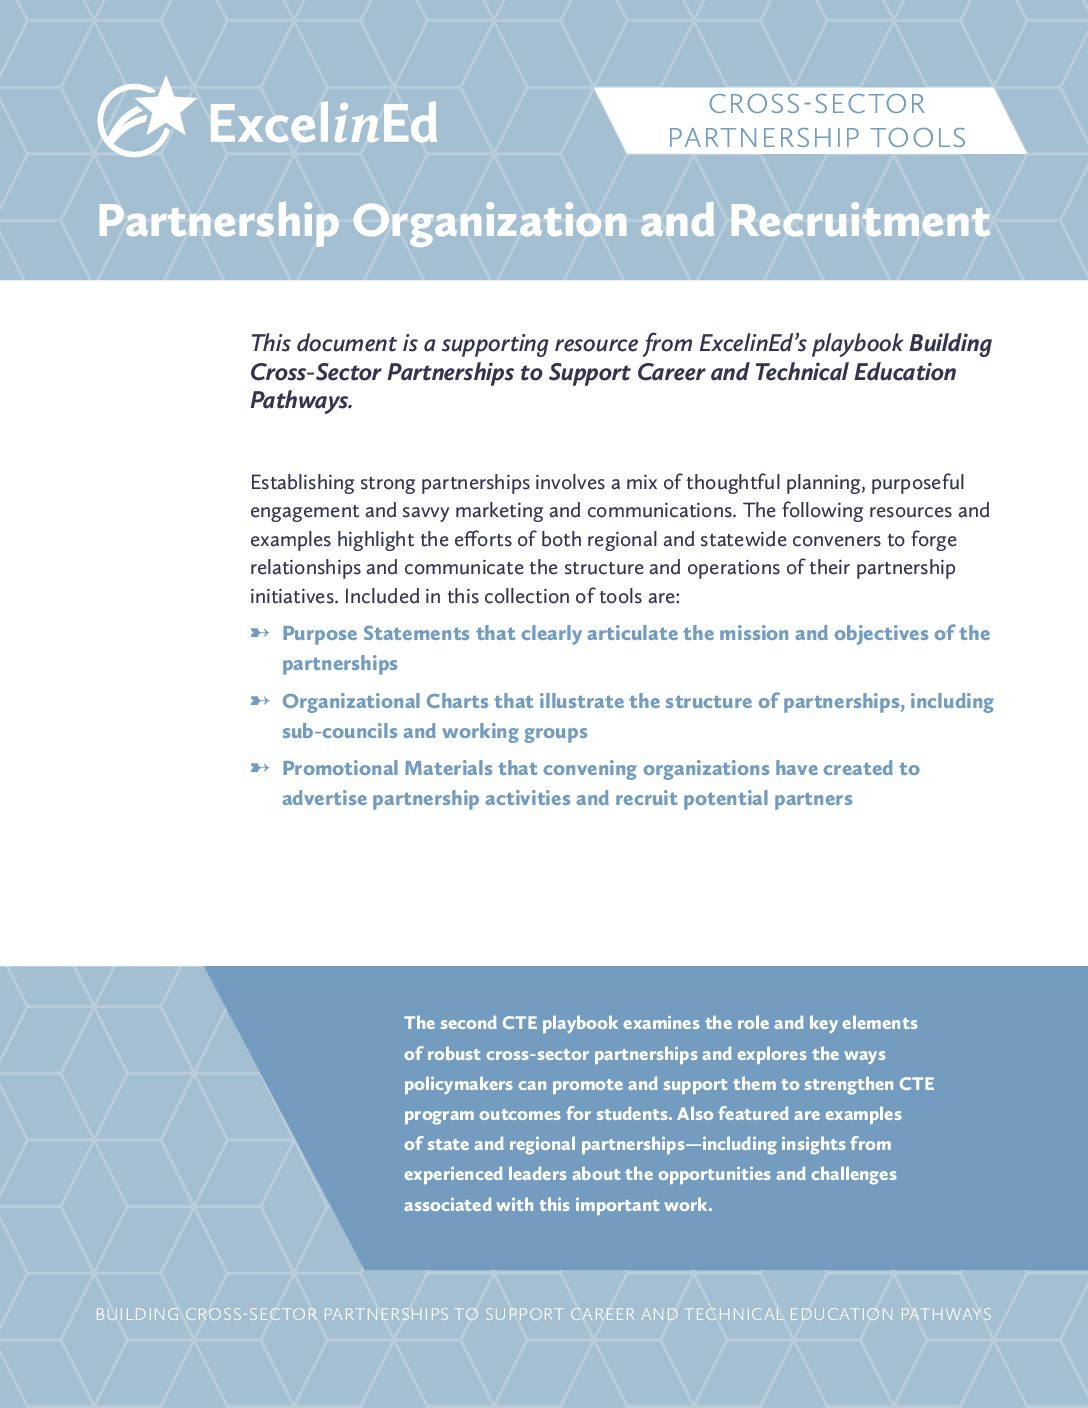 Playbook 2: Cross-Sector Partnership Tools &#8211; Partnership Organization and Recruitment &#8211; May 2018>									 									</a> 									<h5><a href=